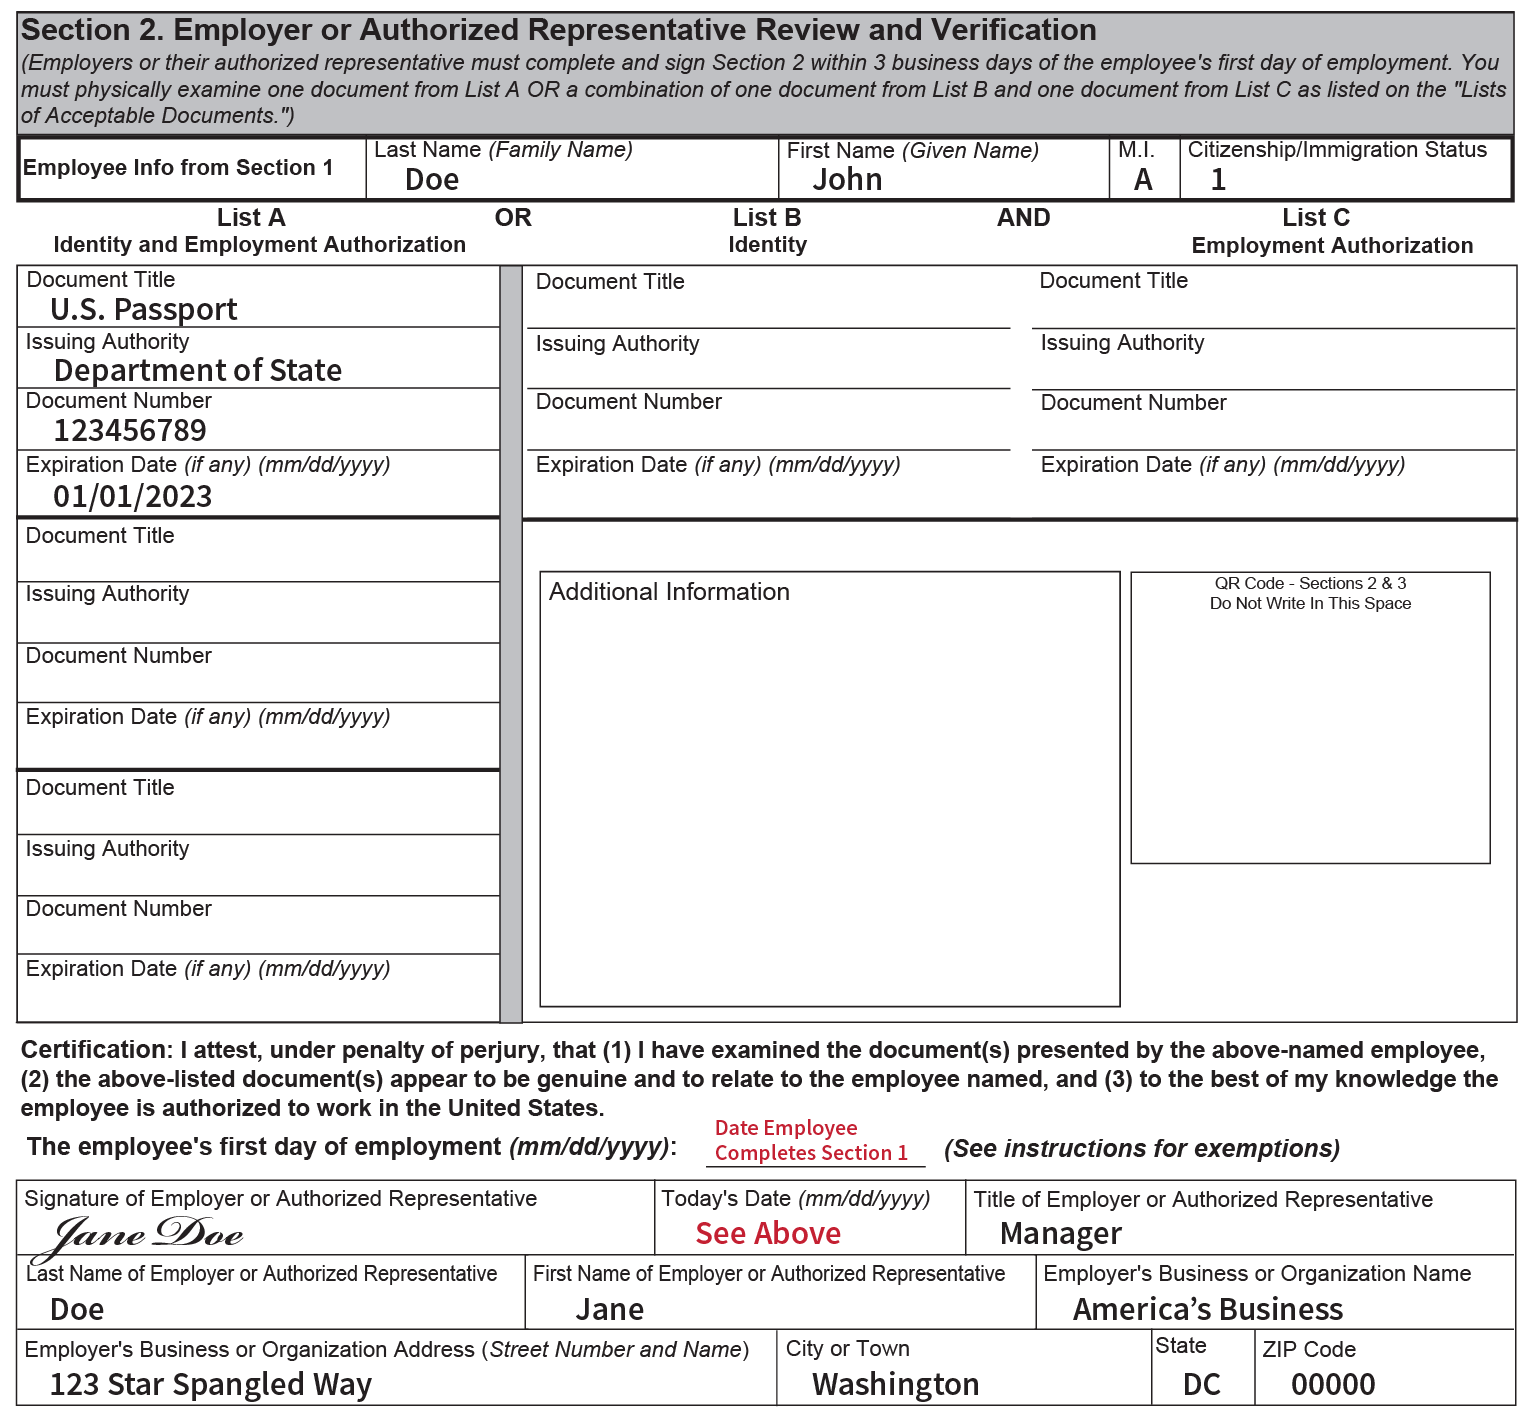 "Image of an example Section 2 of Form I-9 completed by an employer: The example shows the Employee Info from Section 1 fields completed and U.S. passport information entered in the List A column. The example also shows where the employer must sign, and enter their business address, and instructs employers to enter the actual date you complete Section 2 in both the ""Employee's first day or work"" and ""Today's Date"" fields."